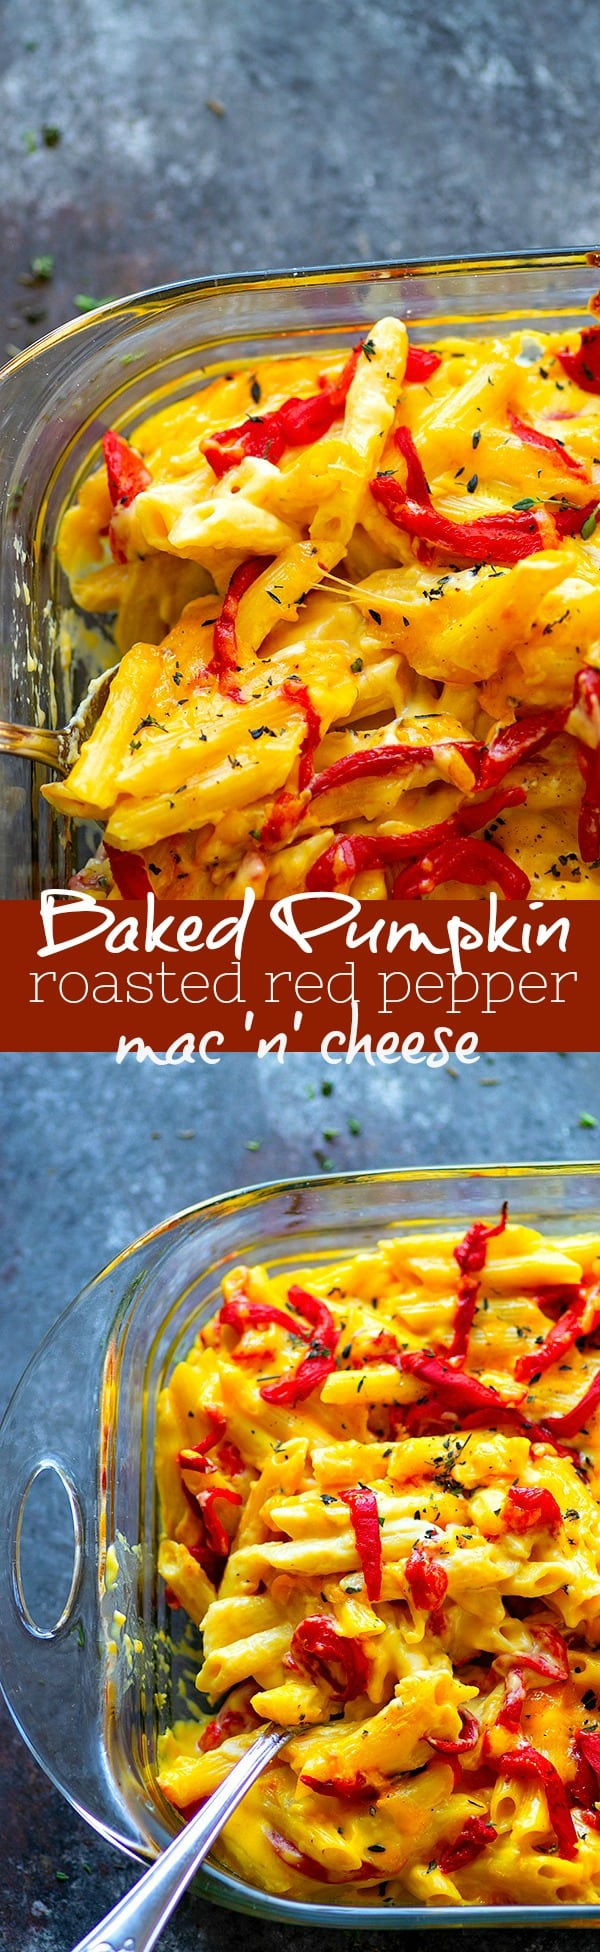 Baked Pumpkin Roasted Red Pepper Mac 'n' Cheese - Flavorful roasted red peppers and creamy pumpkin take this ultimately cheesy baked roasted red pepper mac 'n' cheese to the next level!